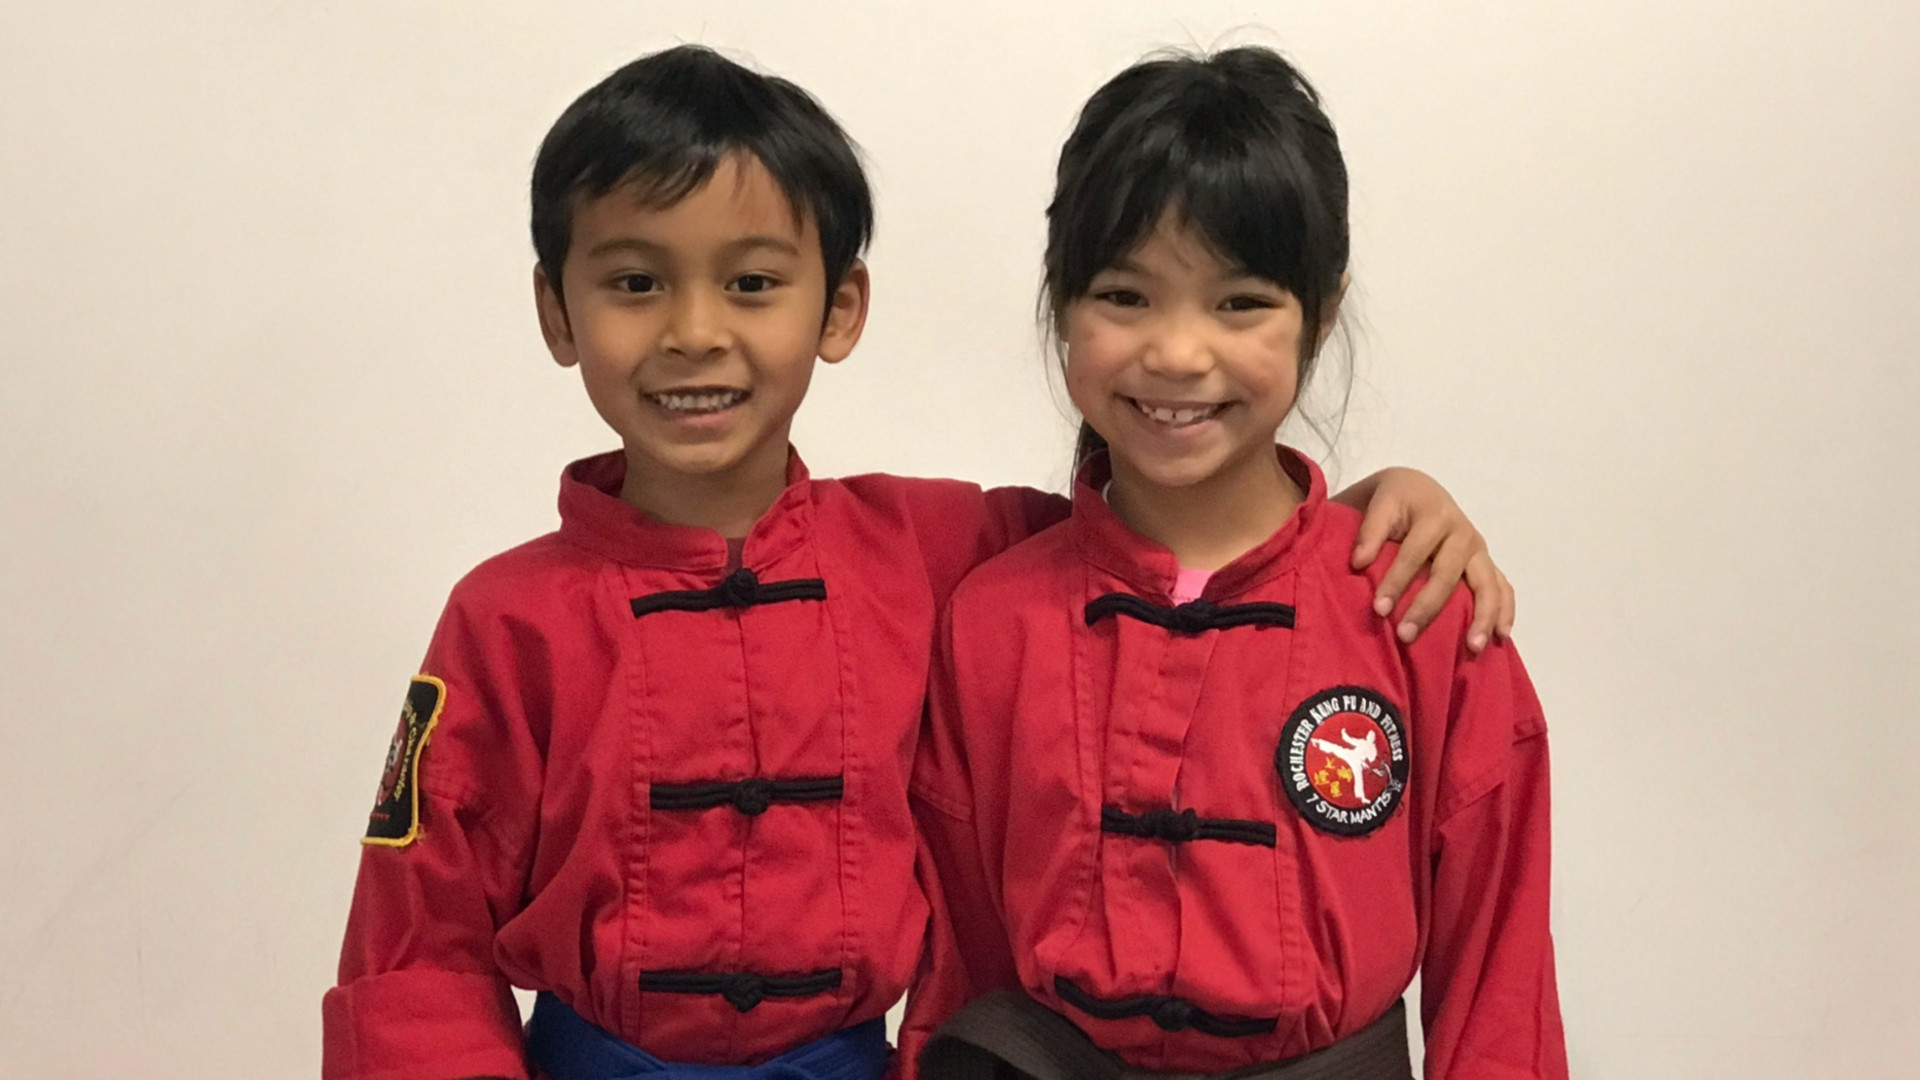 """<br>Kids Martial Arts in Rochester Teaches Discipline & Self Confidence. </br> <a href=""""http://greecekungfu.com/blog/25037/Come-Try-Us-Out-For-FREE""""><strong><span style=""""color:#ffffff;"""">Come Try Our Classes For Free!</span></strong></a>"""